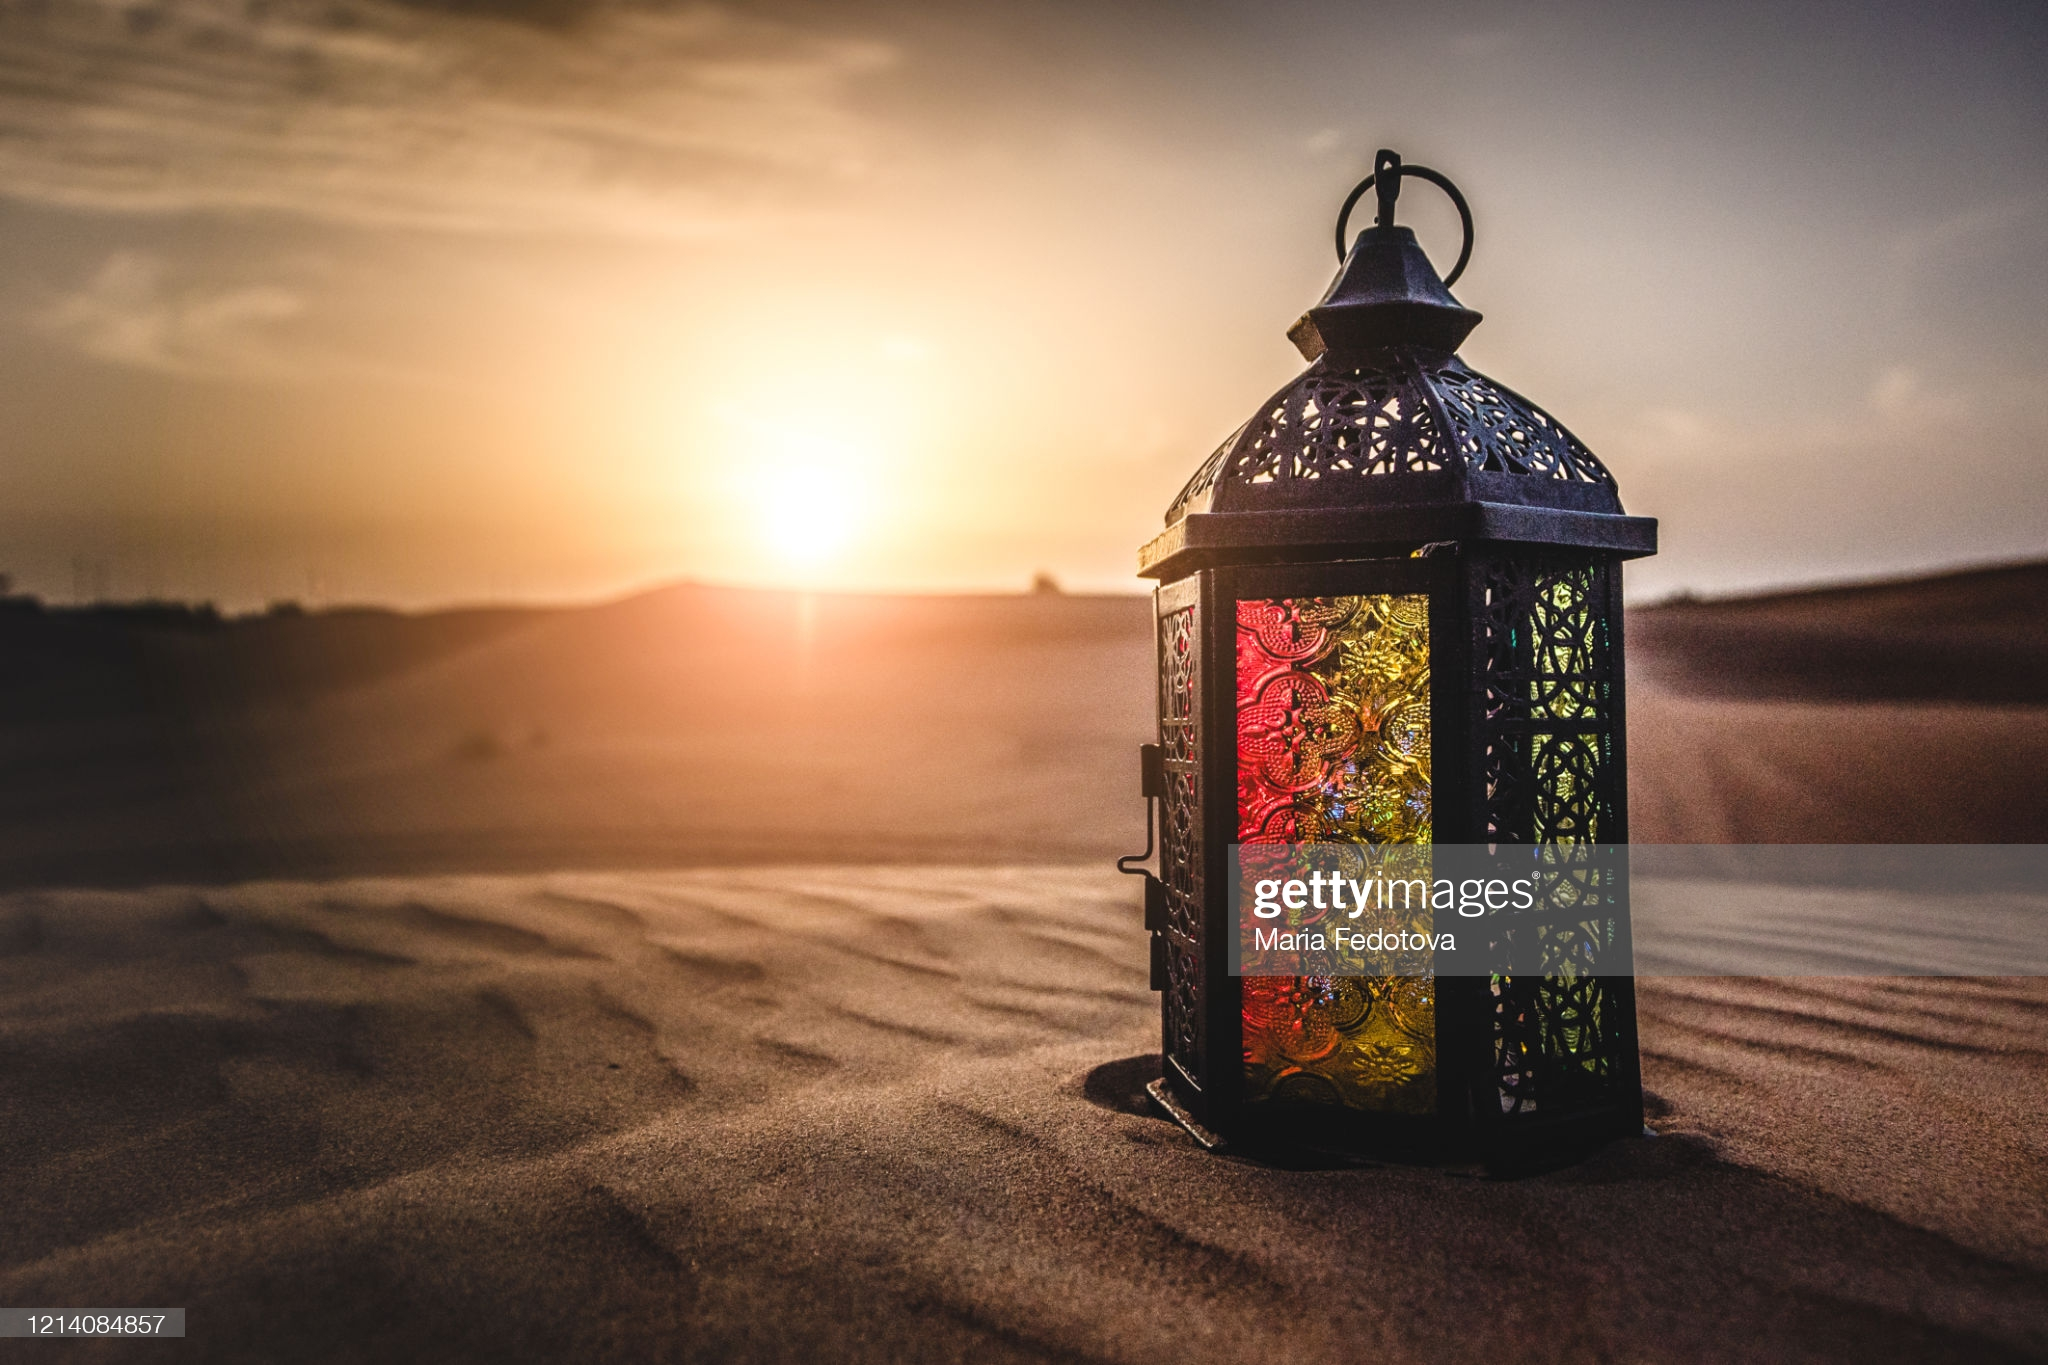 Colourful Middle Eastern fanous in desert at sunset. Ramadan object and concept.